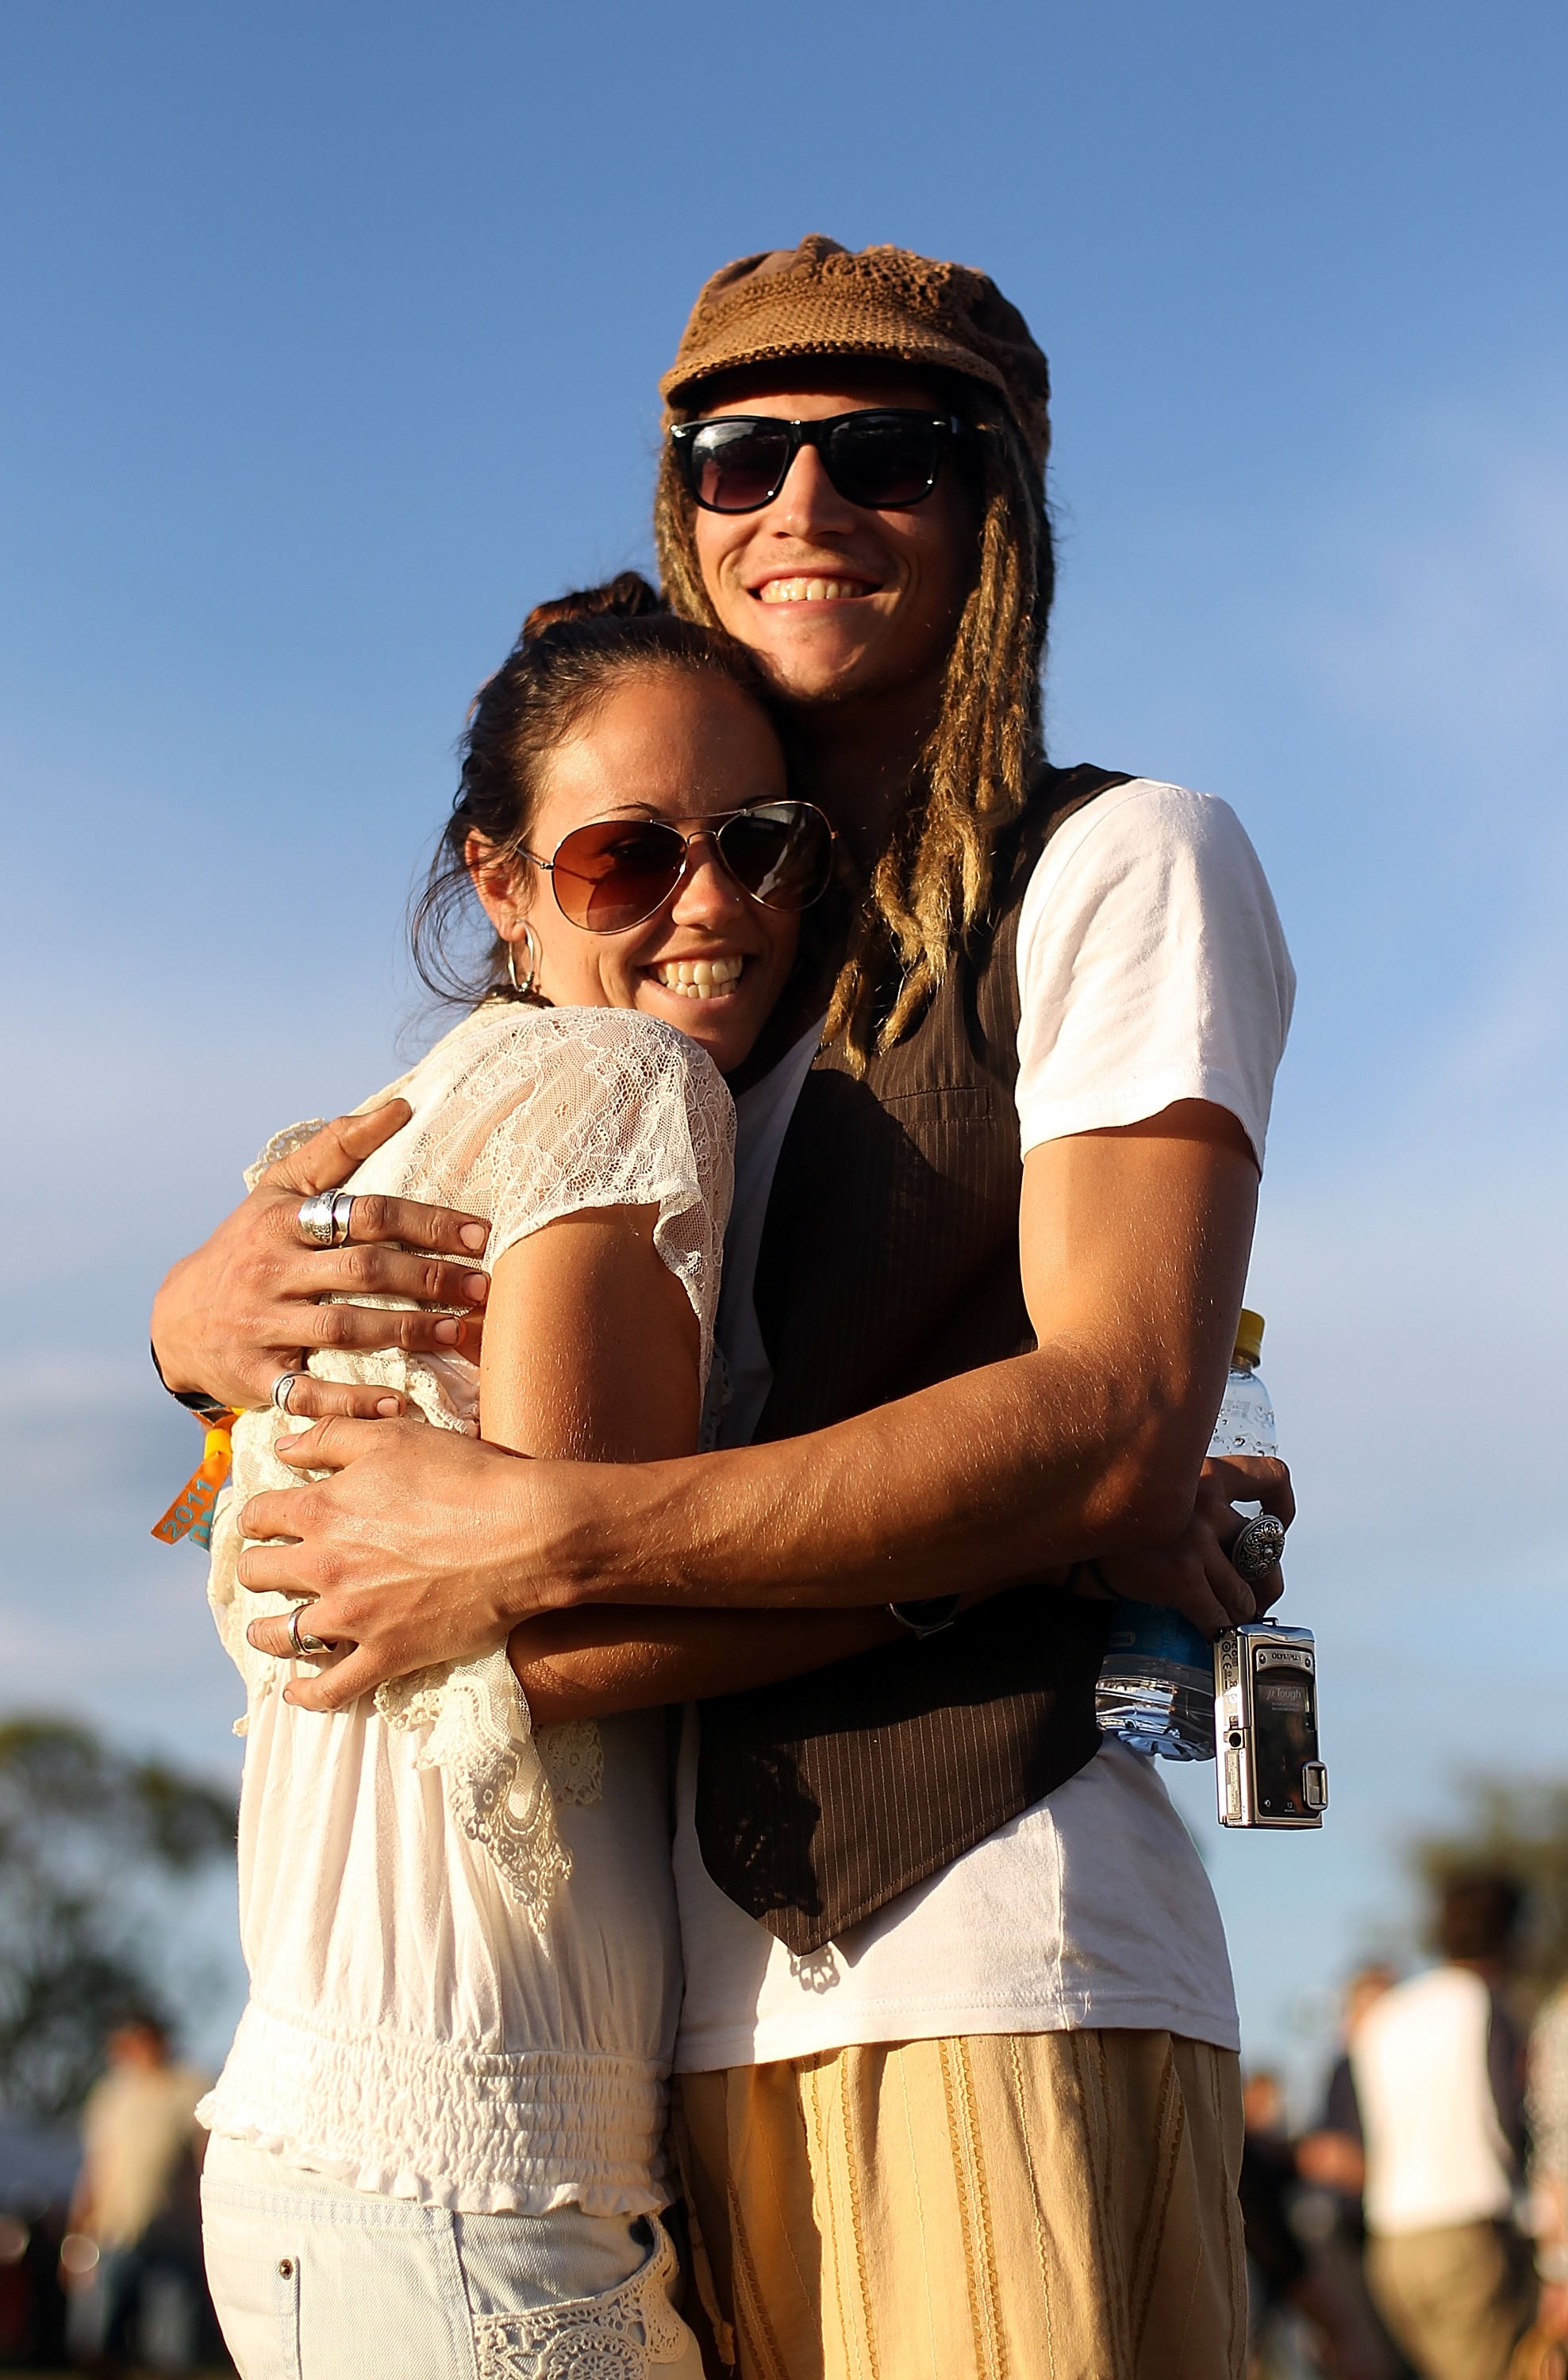 This pair of music fans snuggled up at the Bluesfest Music Festival in Byron Bay, Australia.